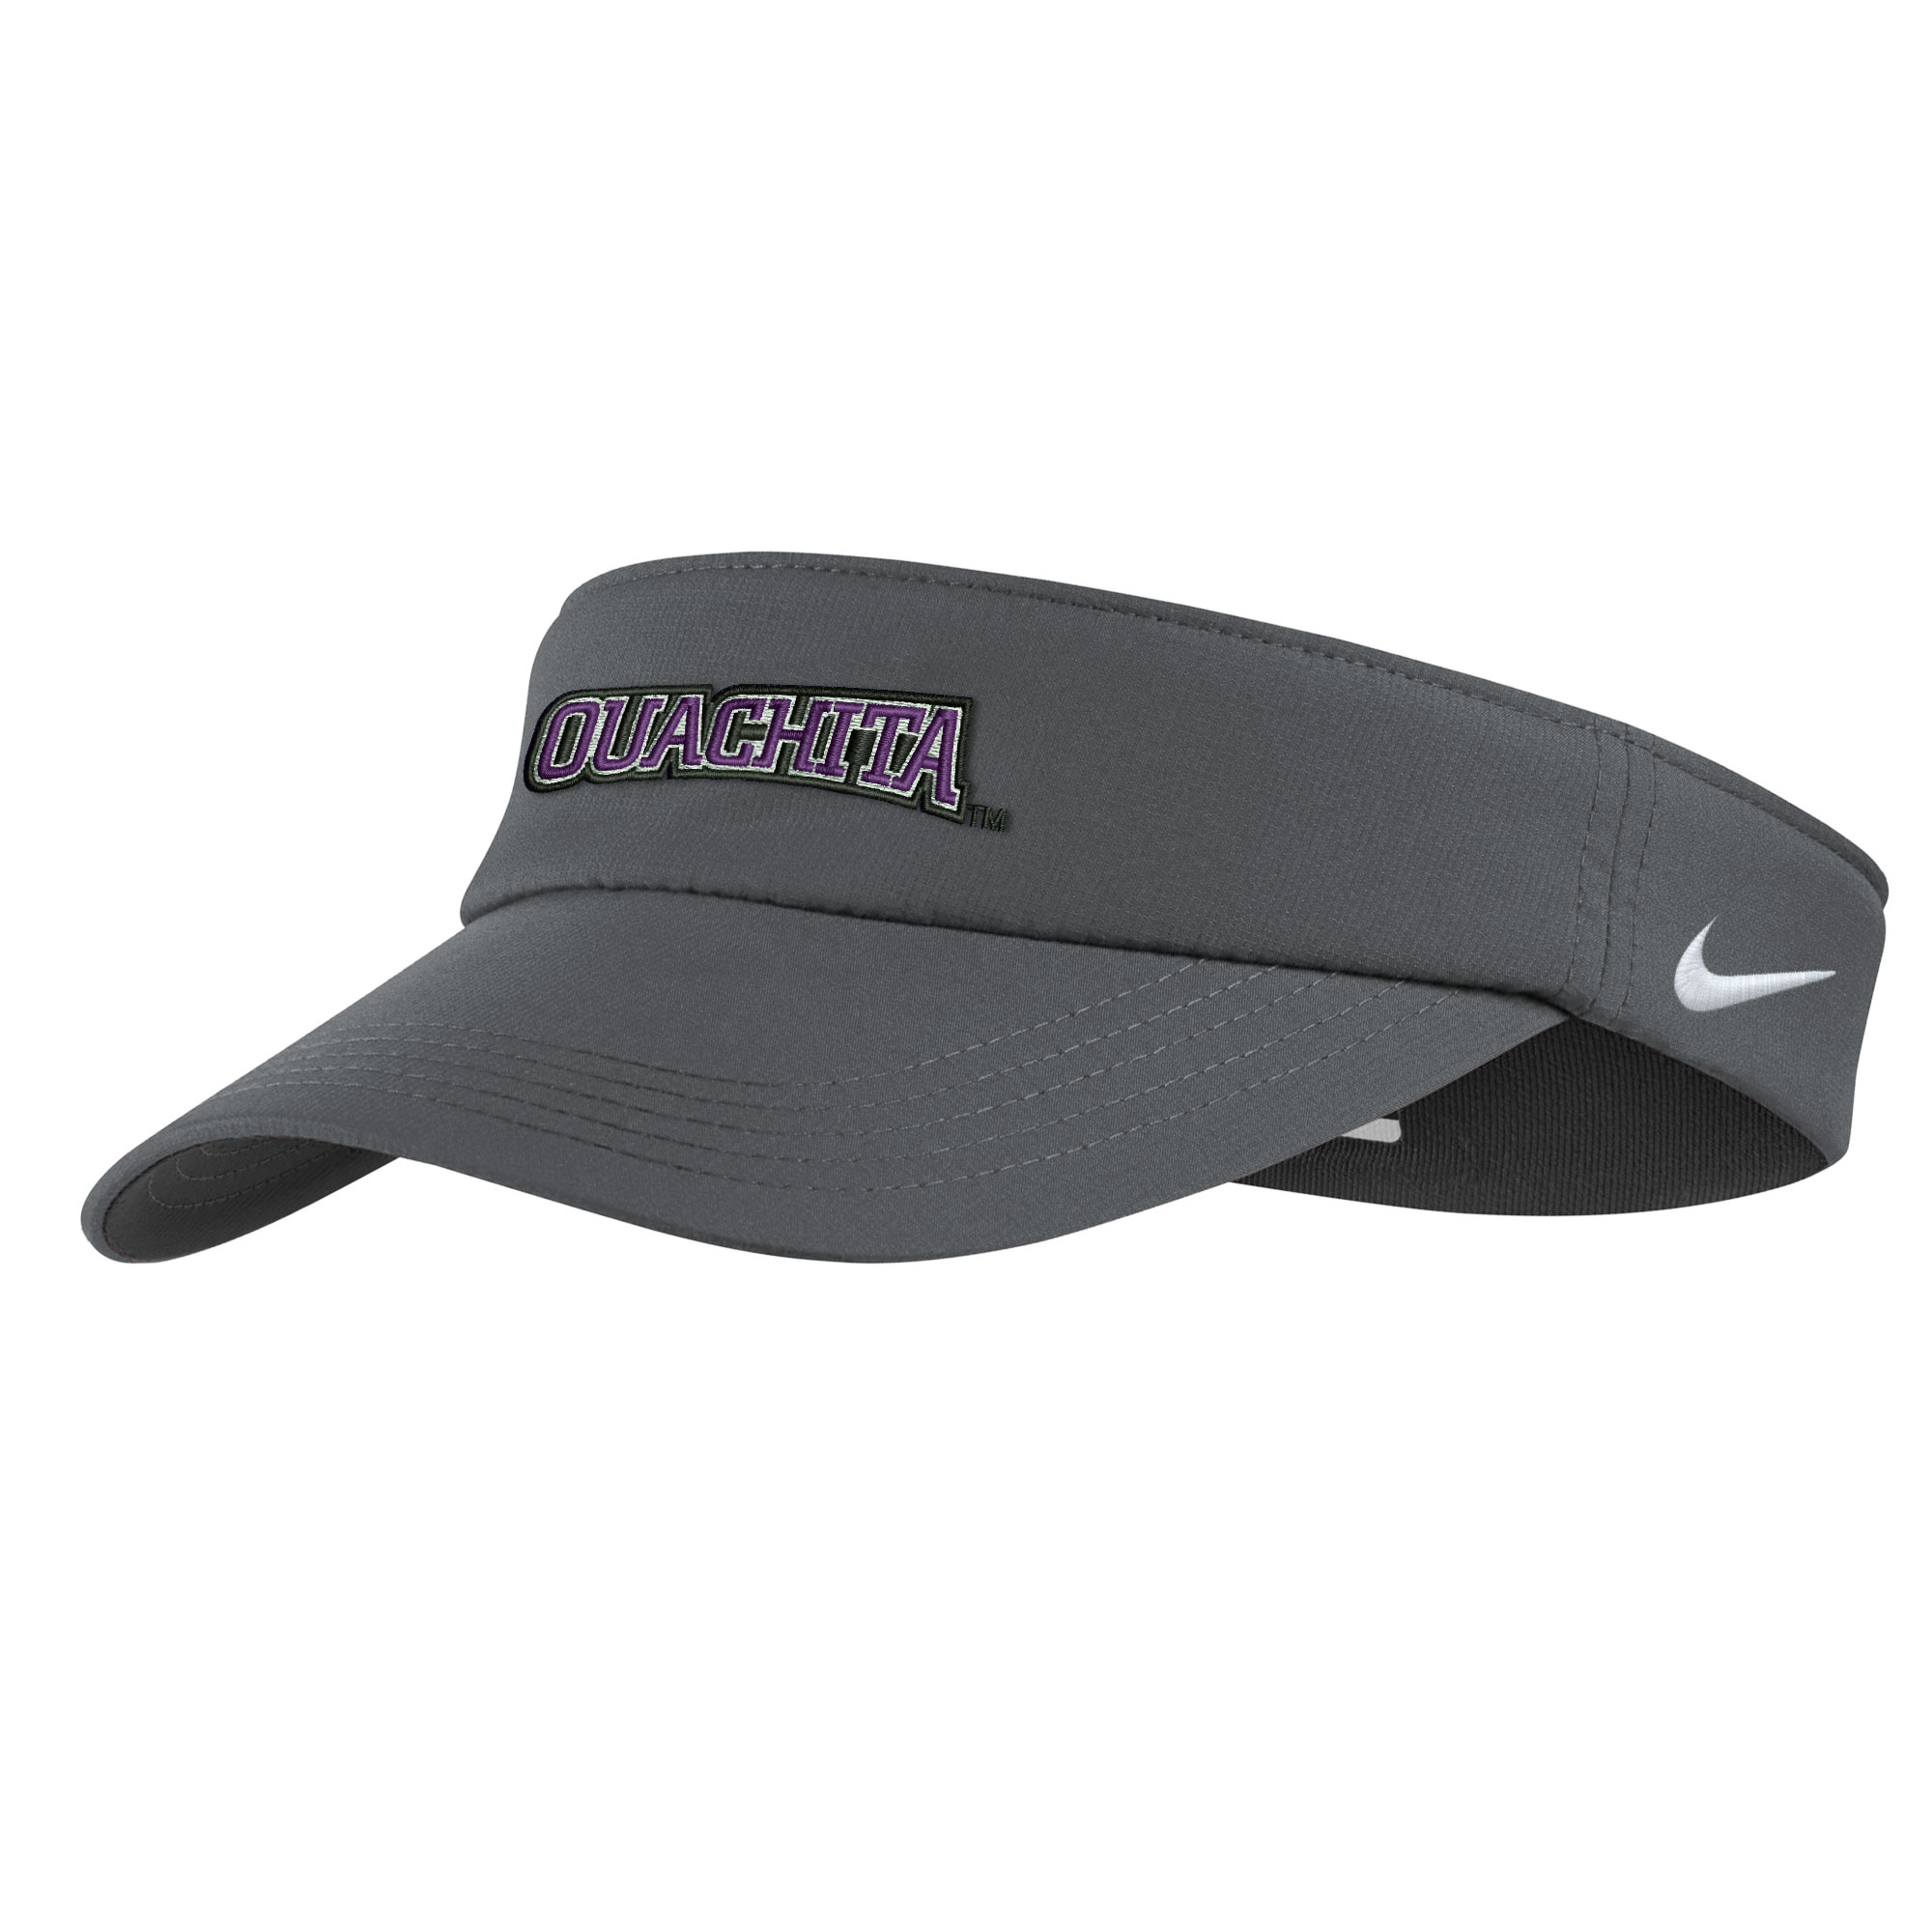 NIKE OUACHITA GOLF TECH TOUR VISOR